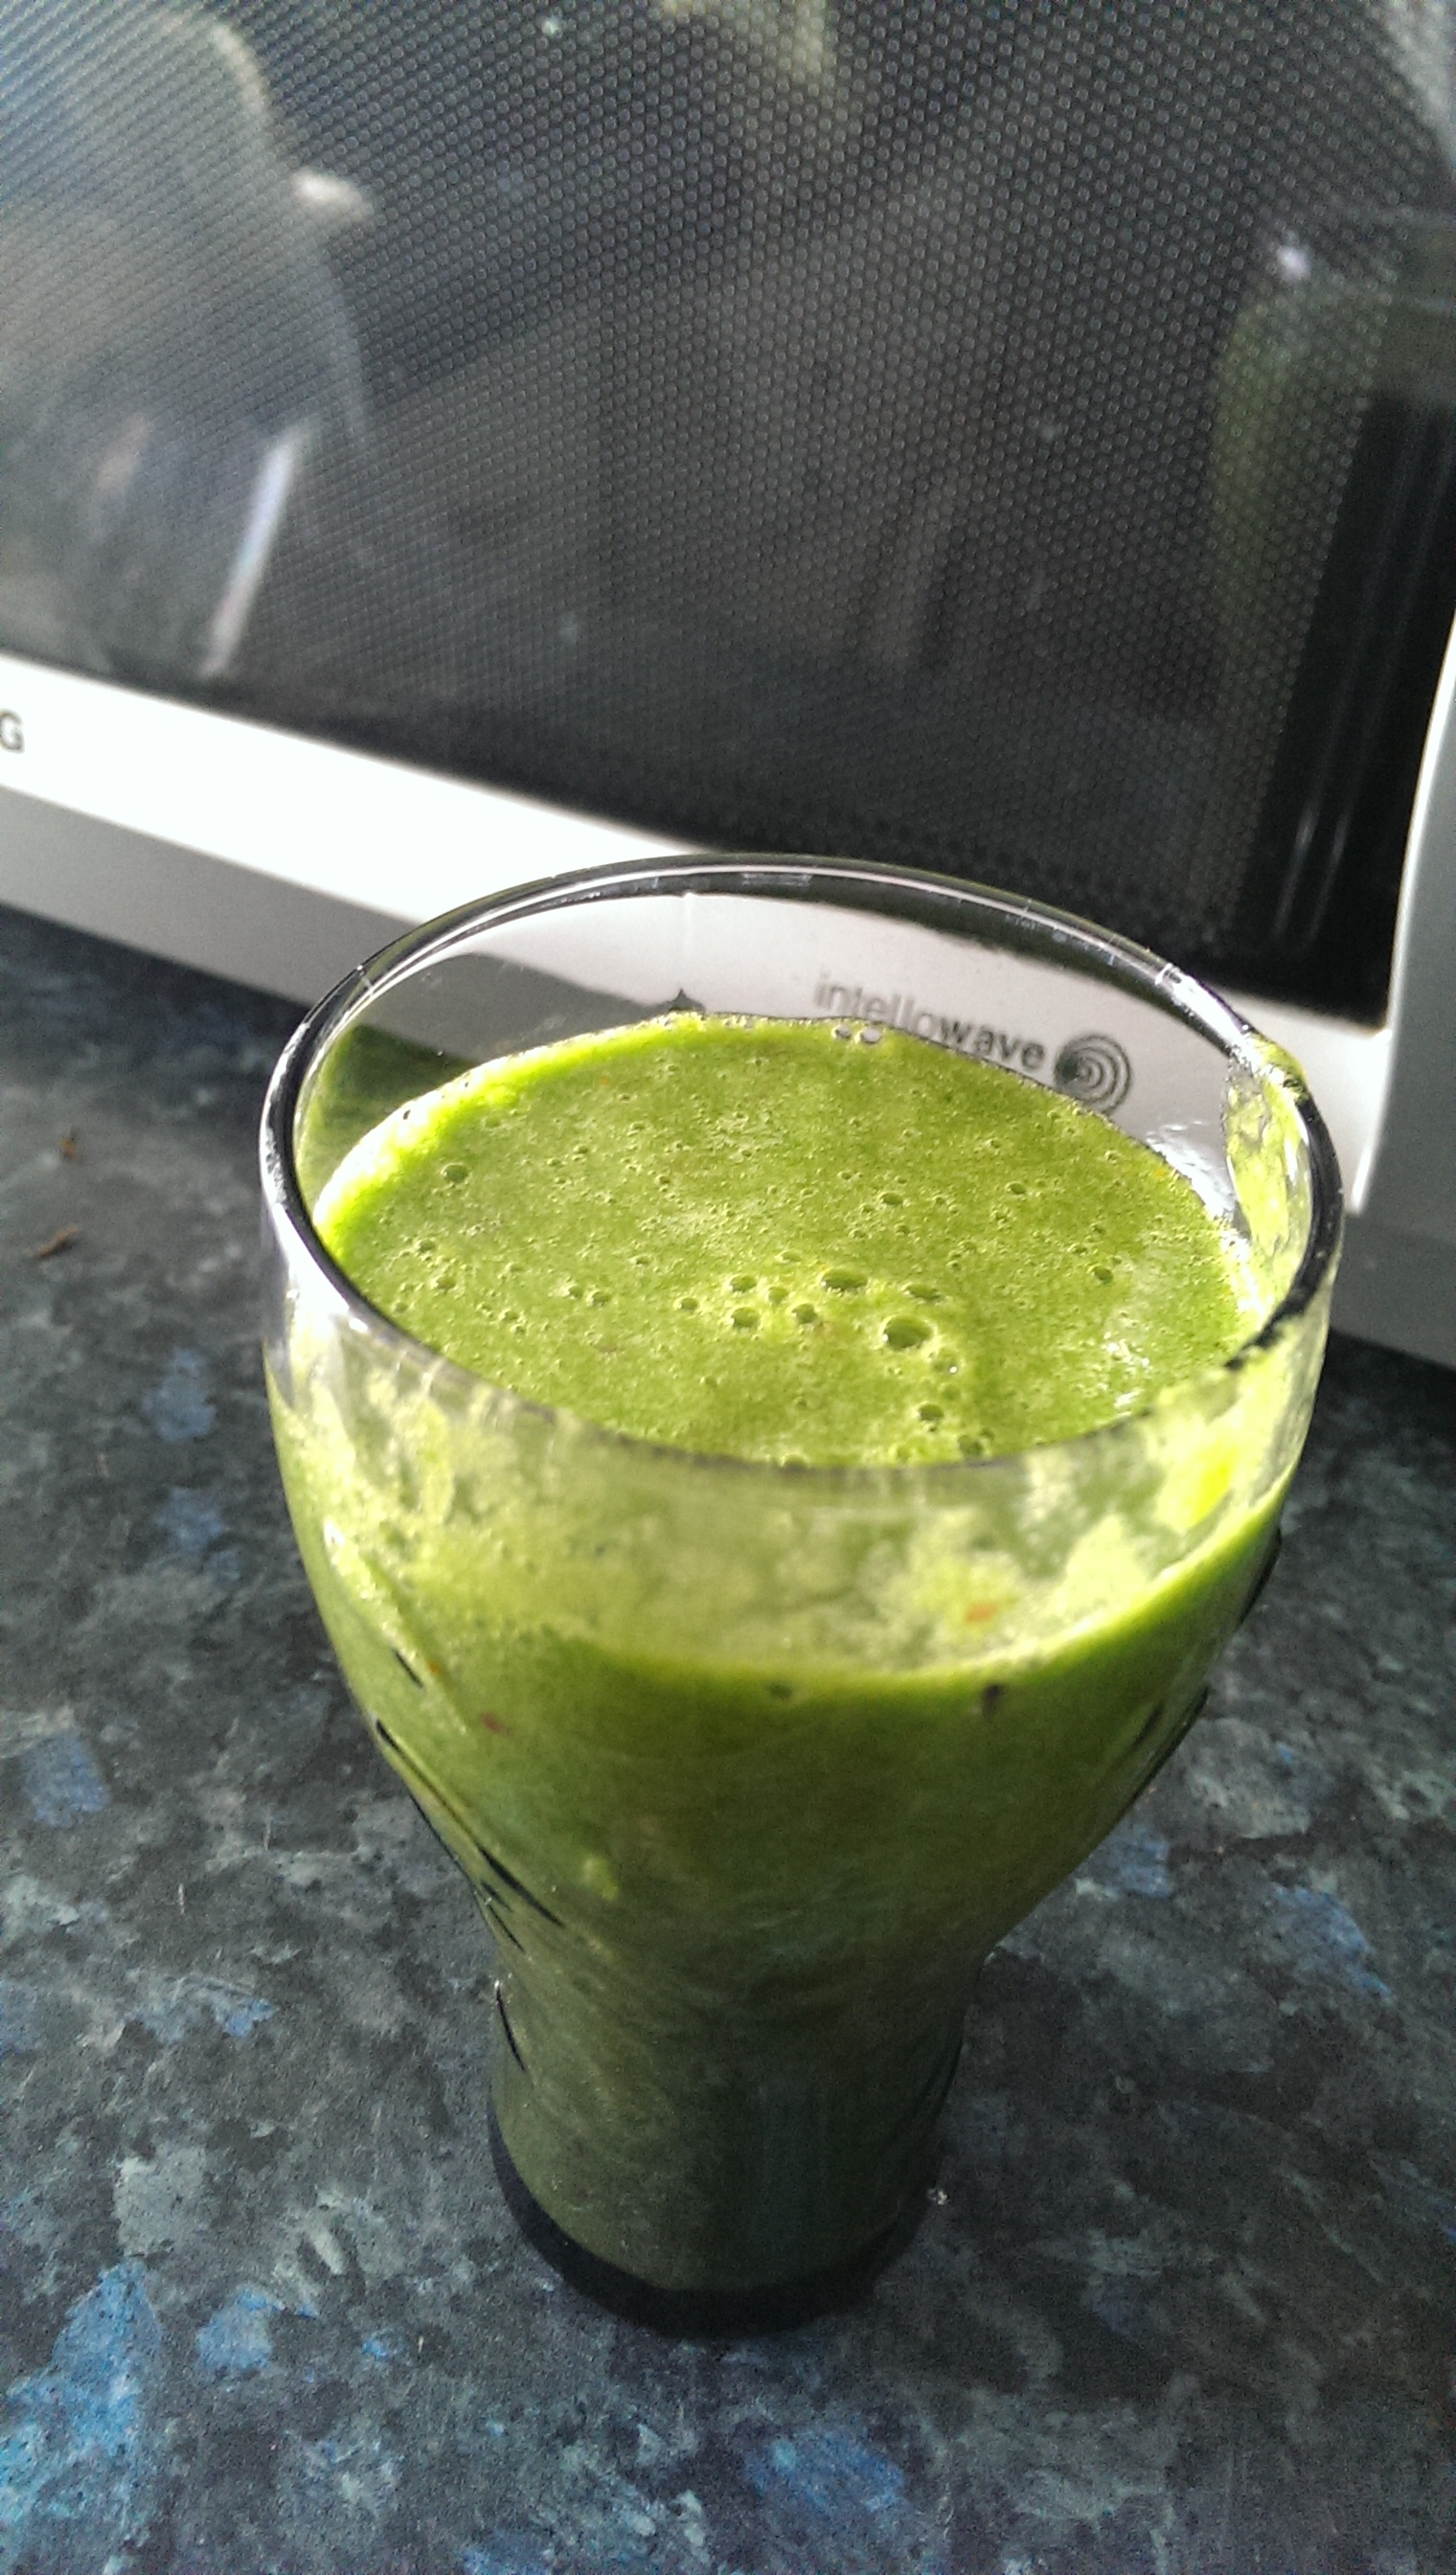 Another green smoothie